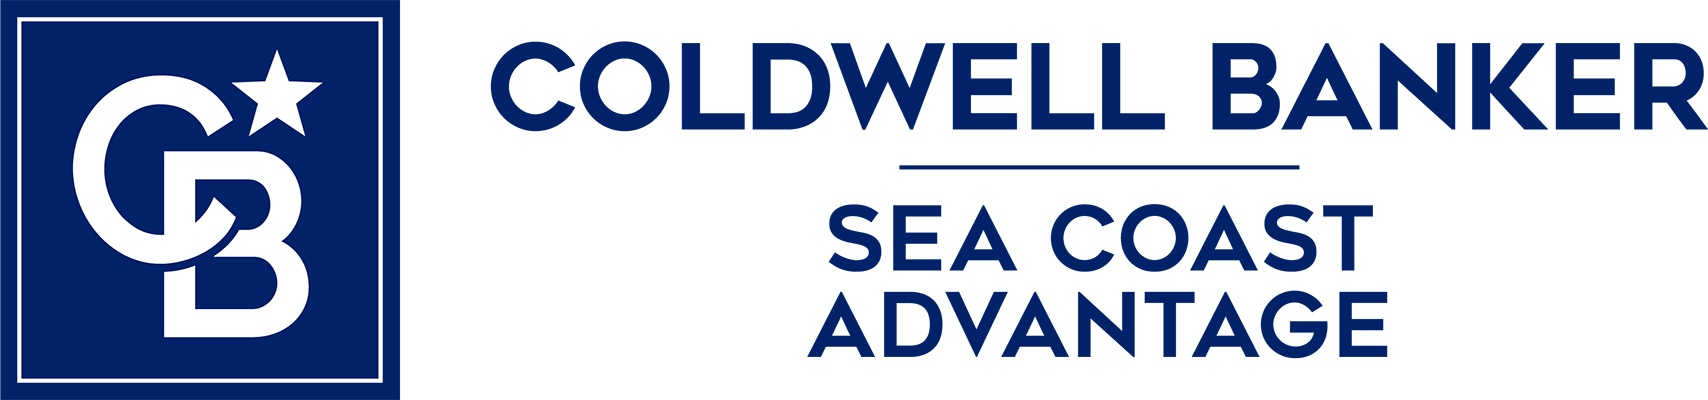 Drew O'Reilly - Coldwell Banker Sea Coast Advantage Realty